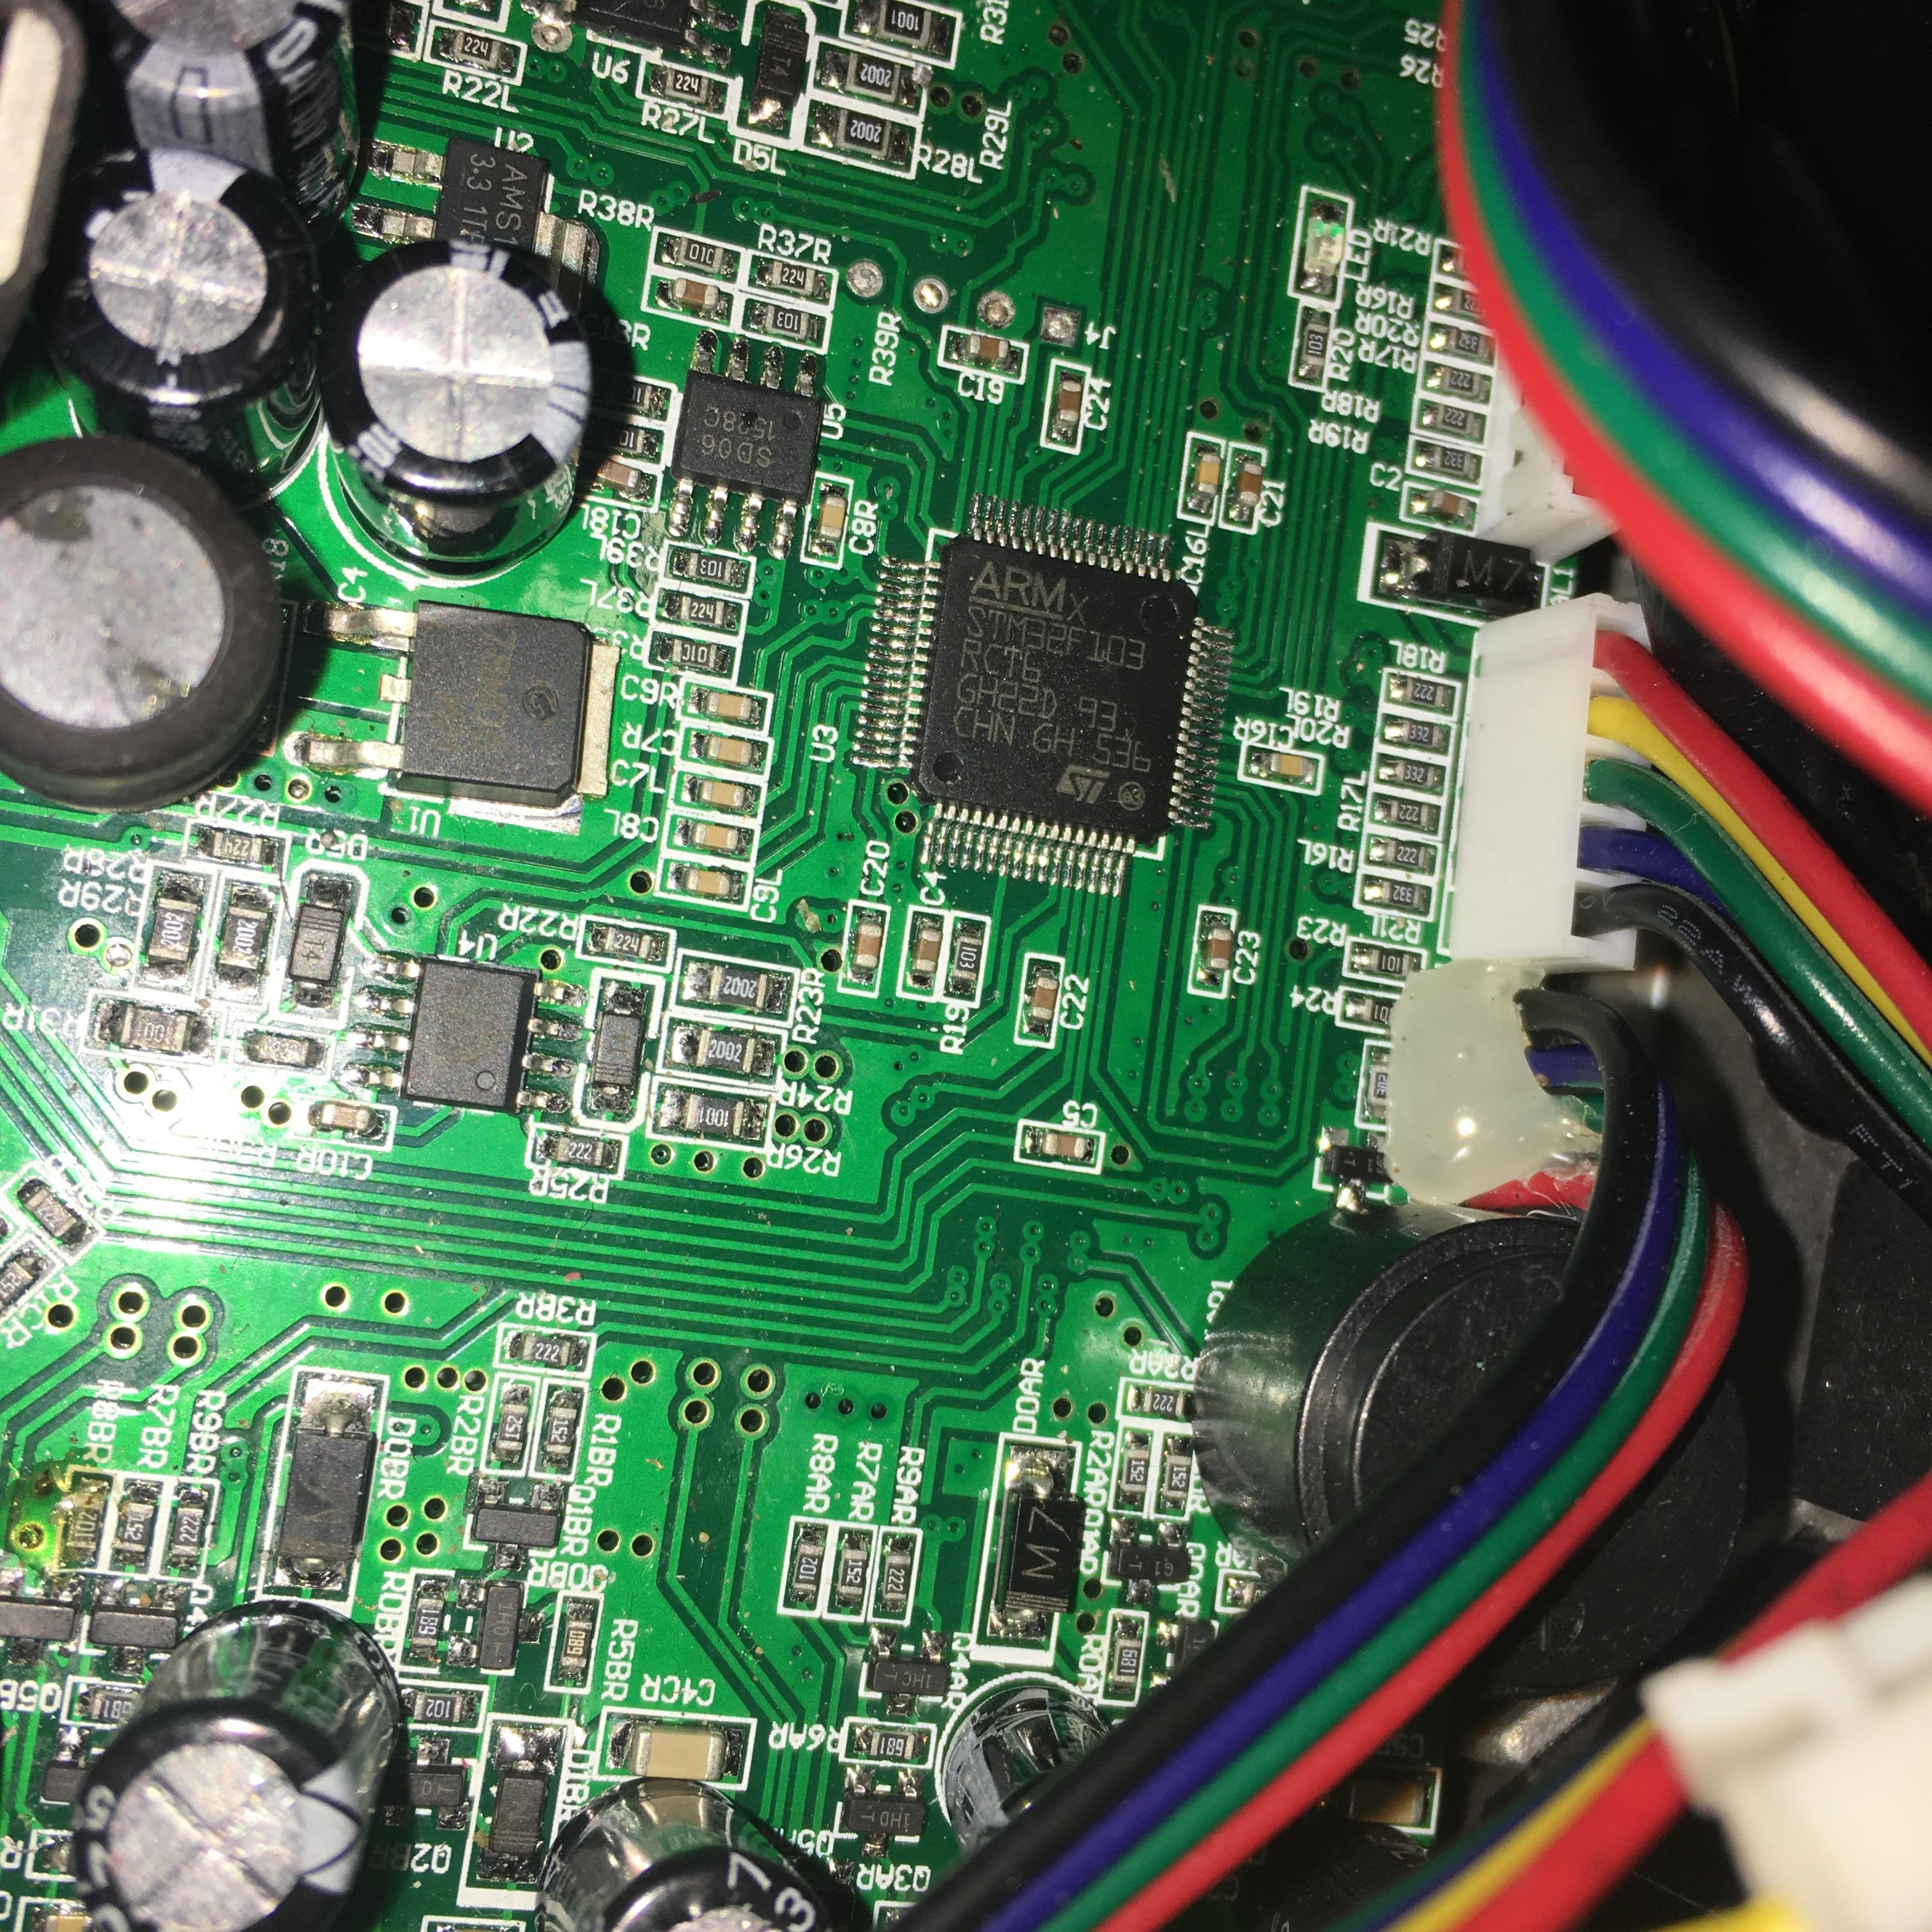 motherboard circuit diagram 2000 isuzu rodeo radio wiring smart self balancing electric scooter hover board fault diagnosis and repair - hoverboard ...